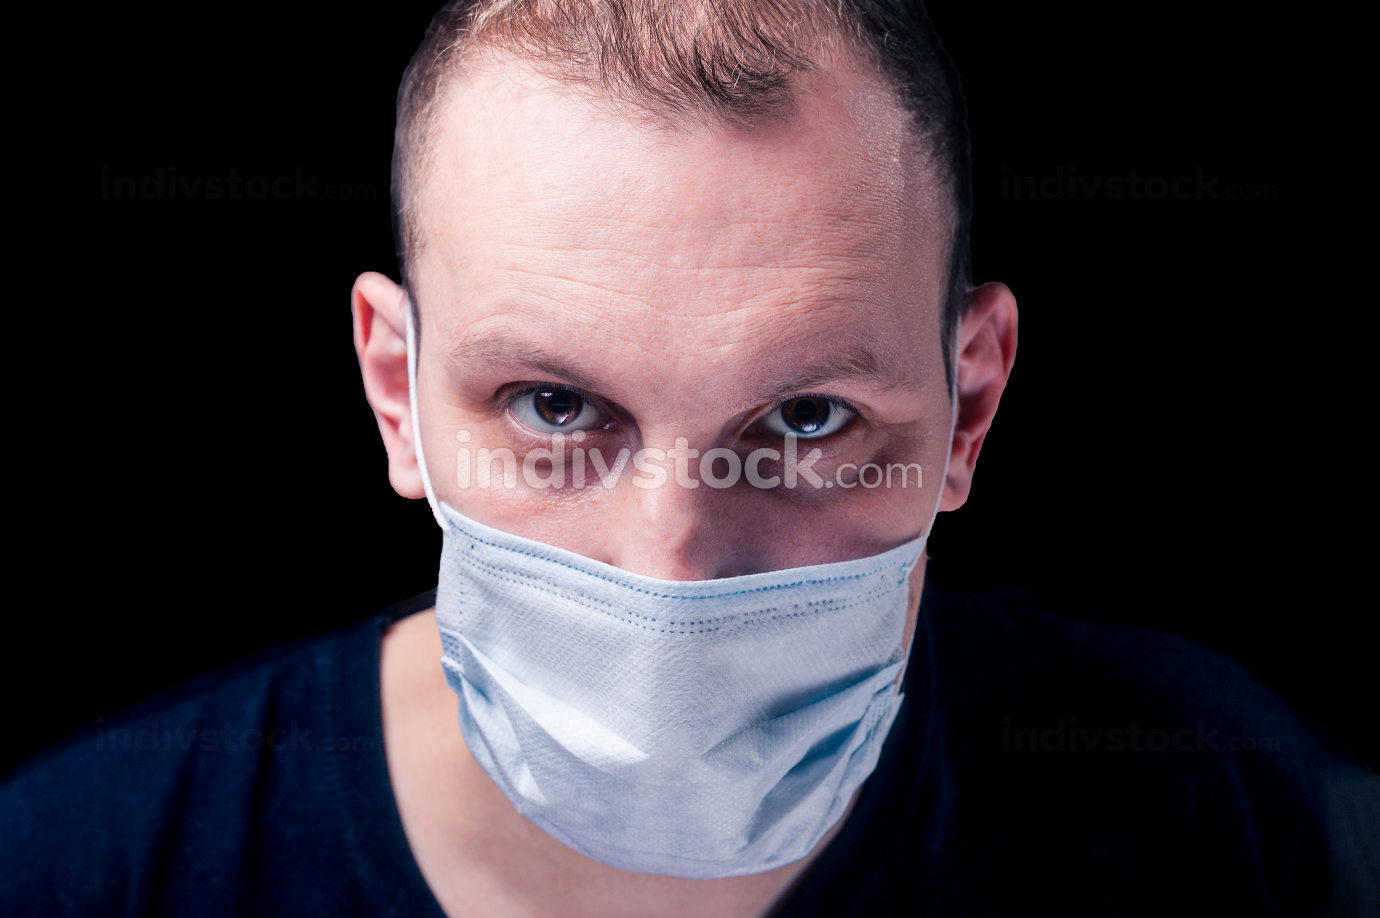 blonde man with brown eyes with a procedure medical white face mask from a coronavirus pandemic disease infection COVID-19 isolated on black background